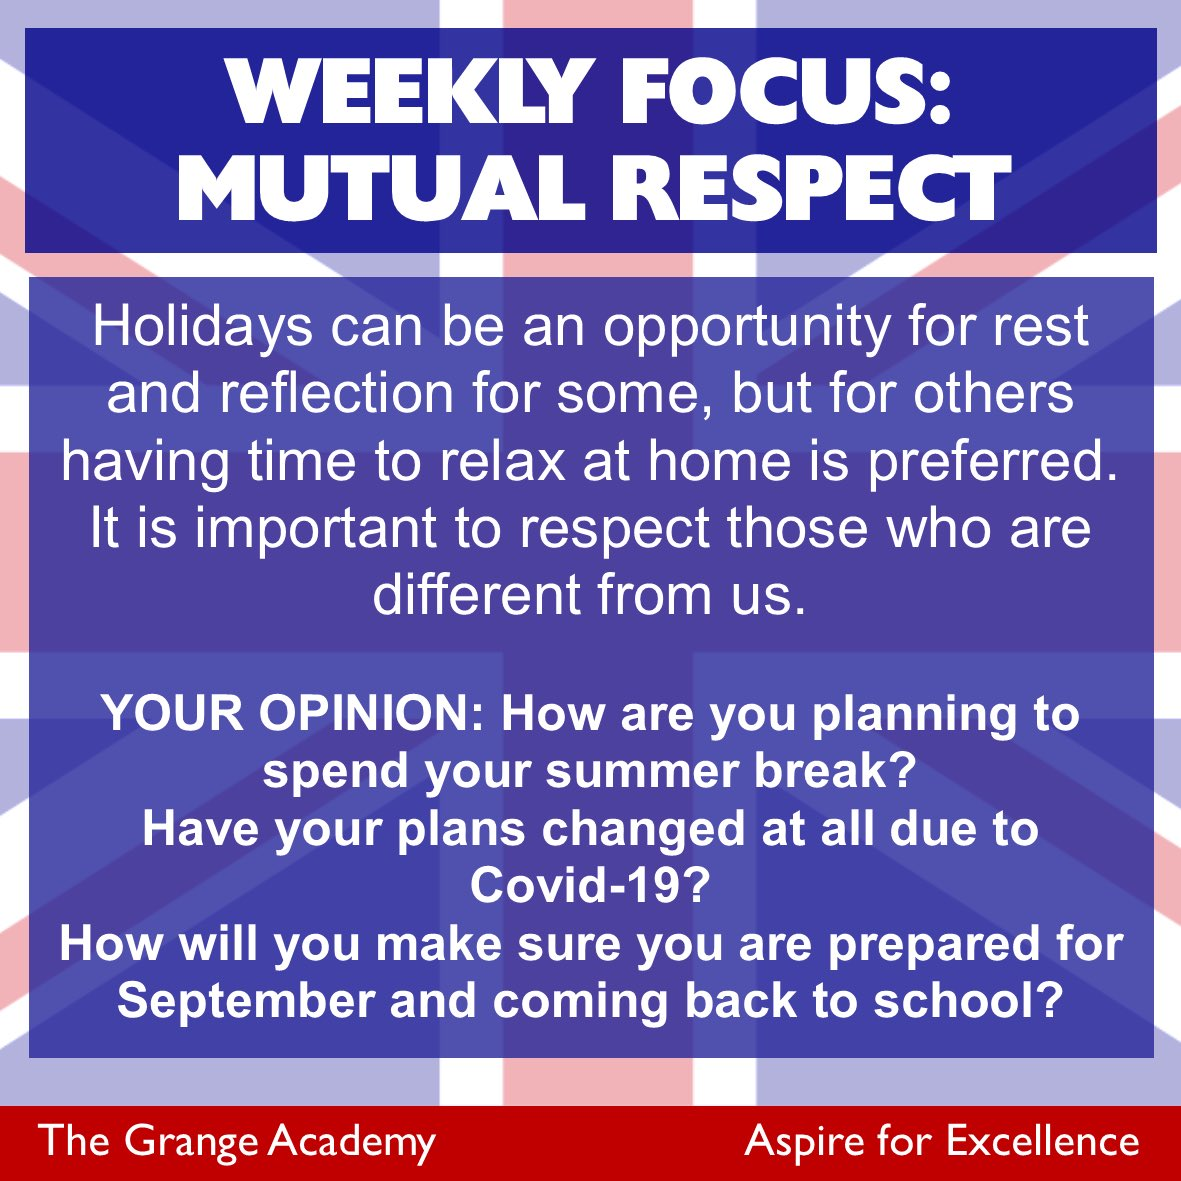 Our 'Modern British Values' focus this week is Mutual Respect as we consider the importance of holidays and why people need a break. What are your views? #mutualrespect #holidays #takeabreak pic.twitter.com/DvhVEDcBit